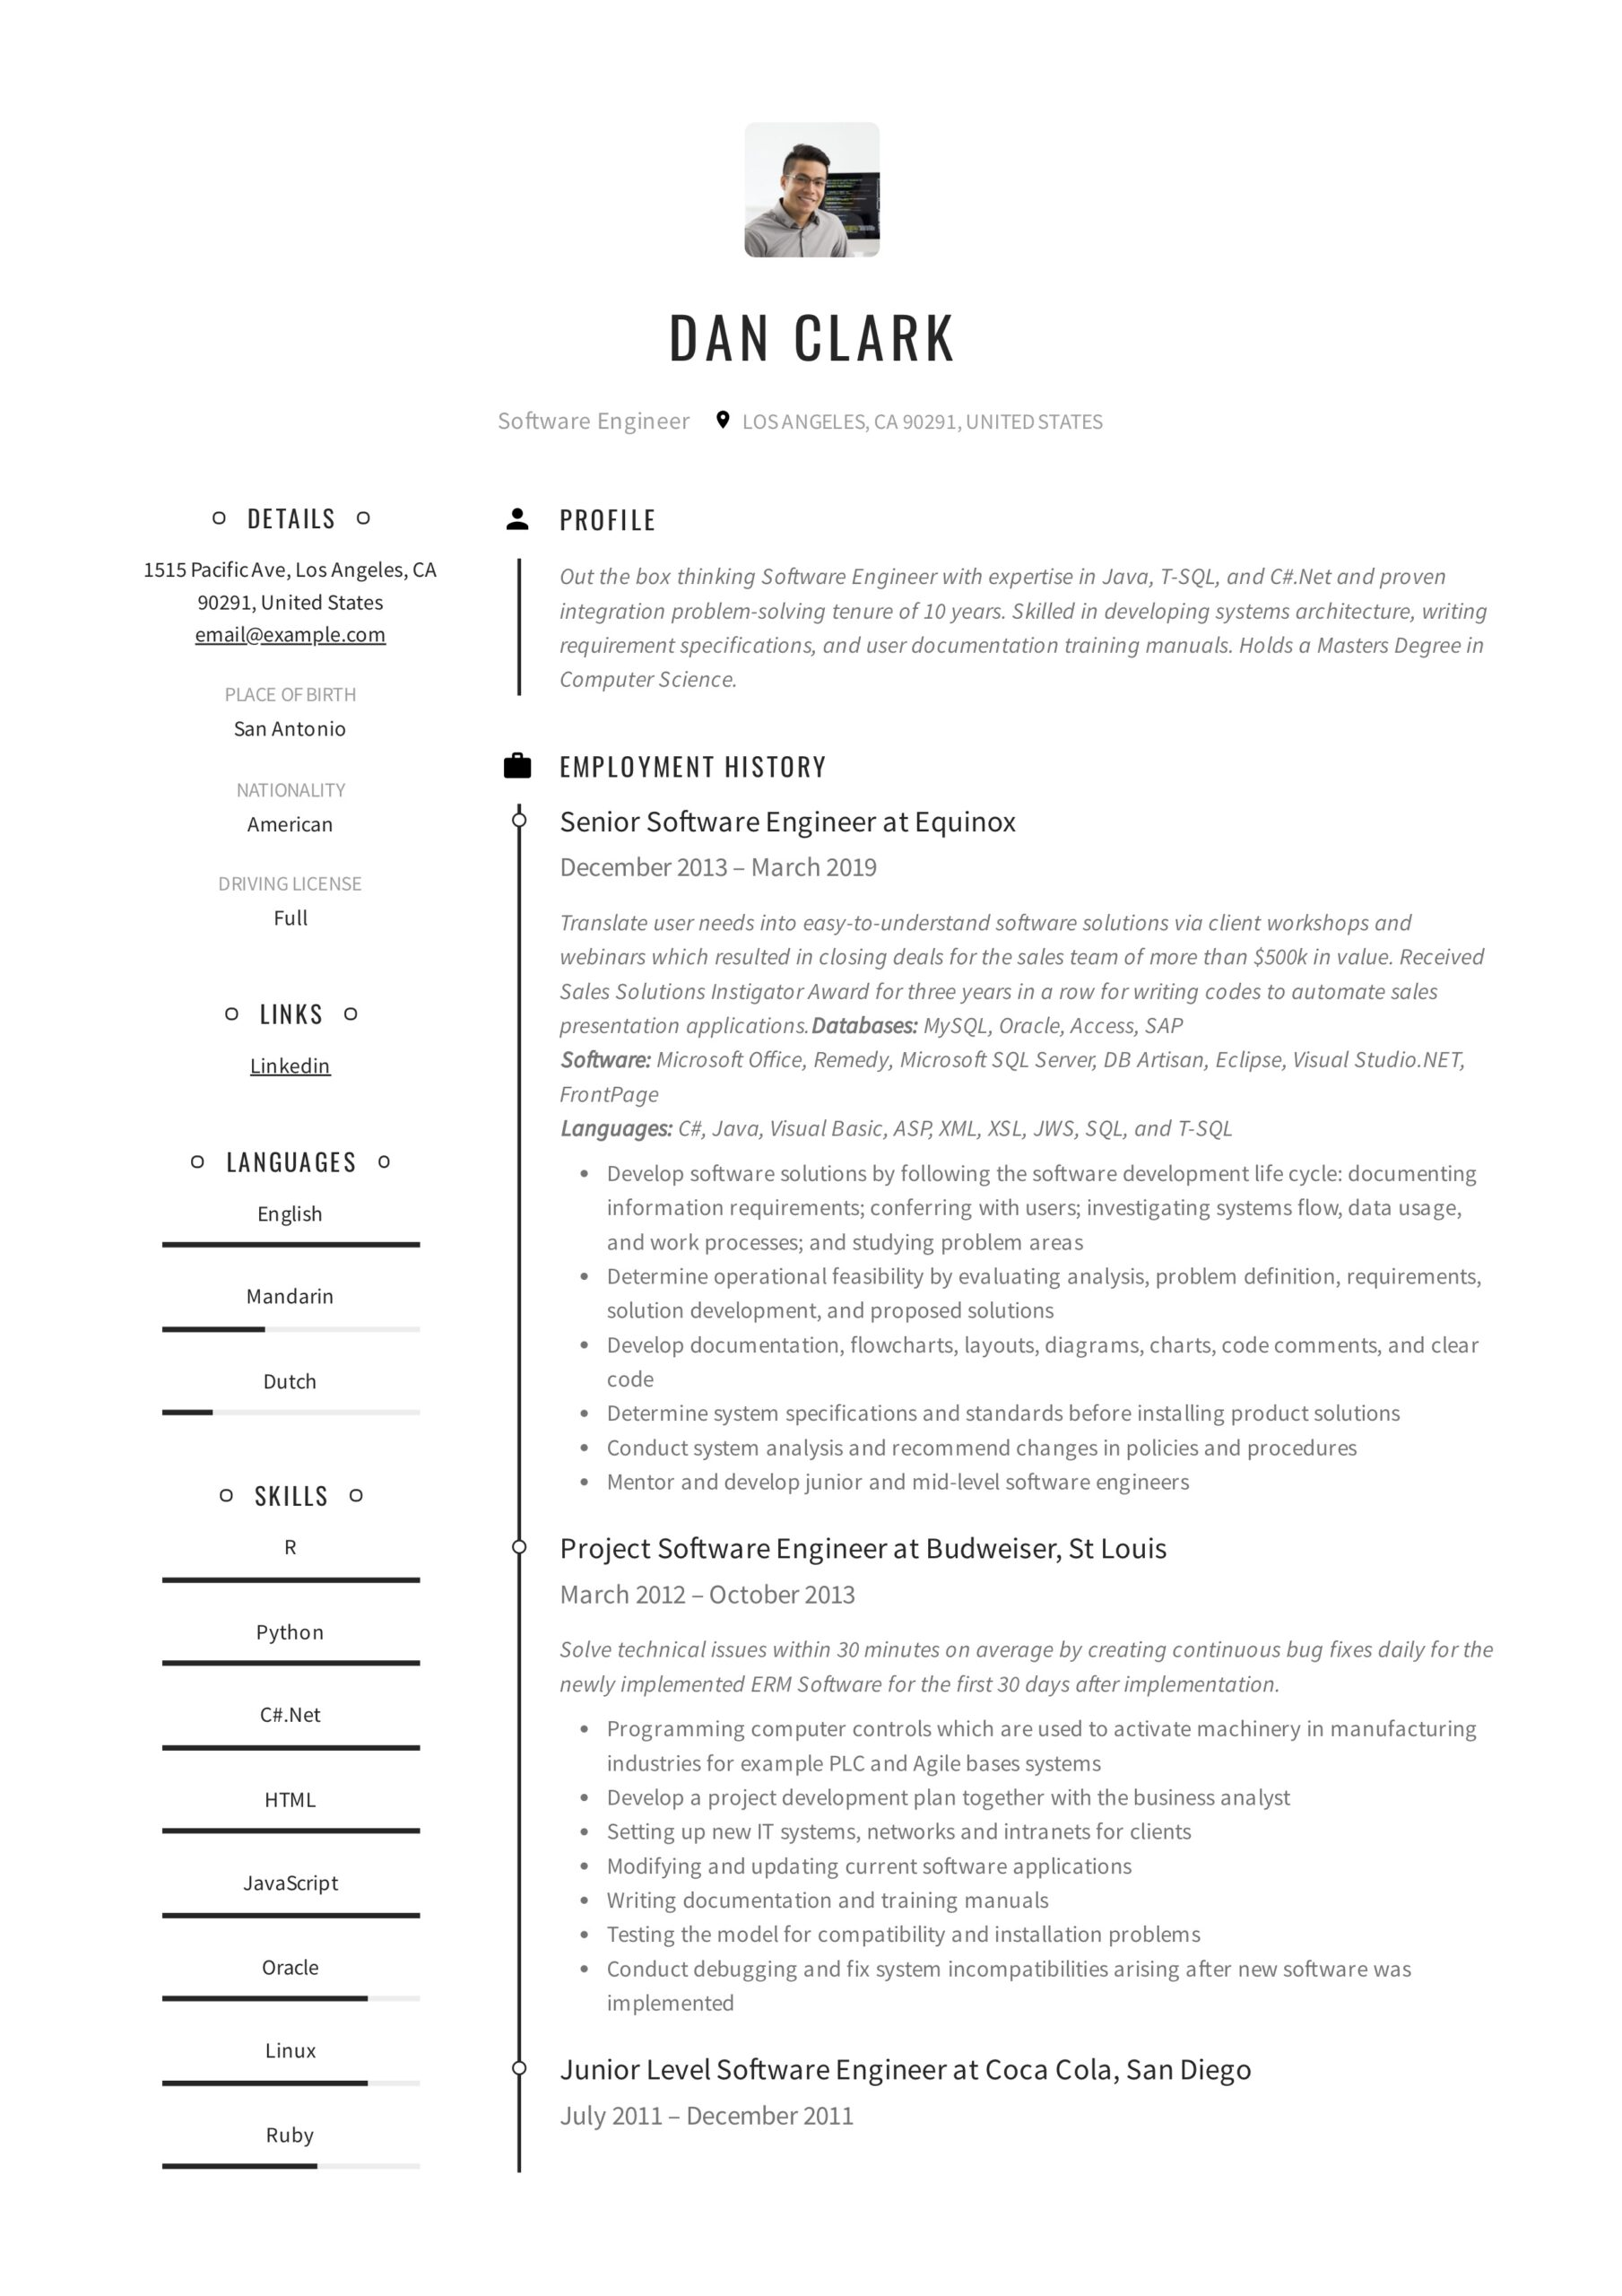 resume templates pdf word free downloads and guides current format dan software engineer Resume Current Resume Format 2019